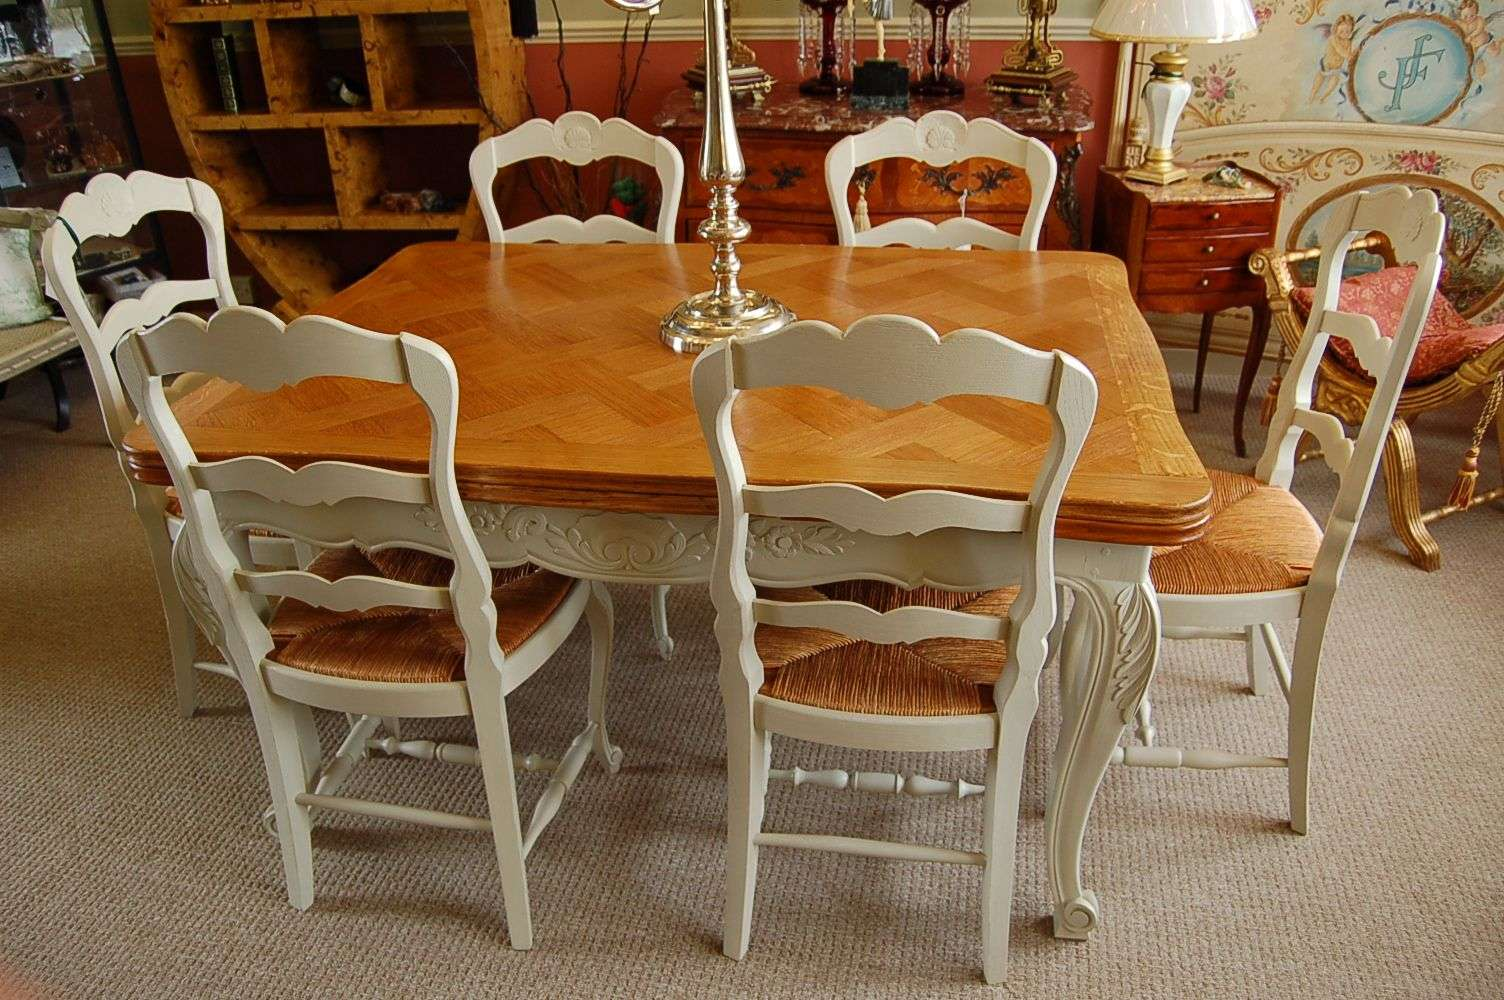 Super Antique French Dining Tables Globerove Com Interior Design Ideas Oteneahmetsinanyavuzinfo